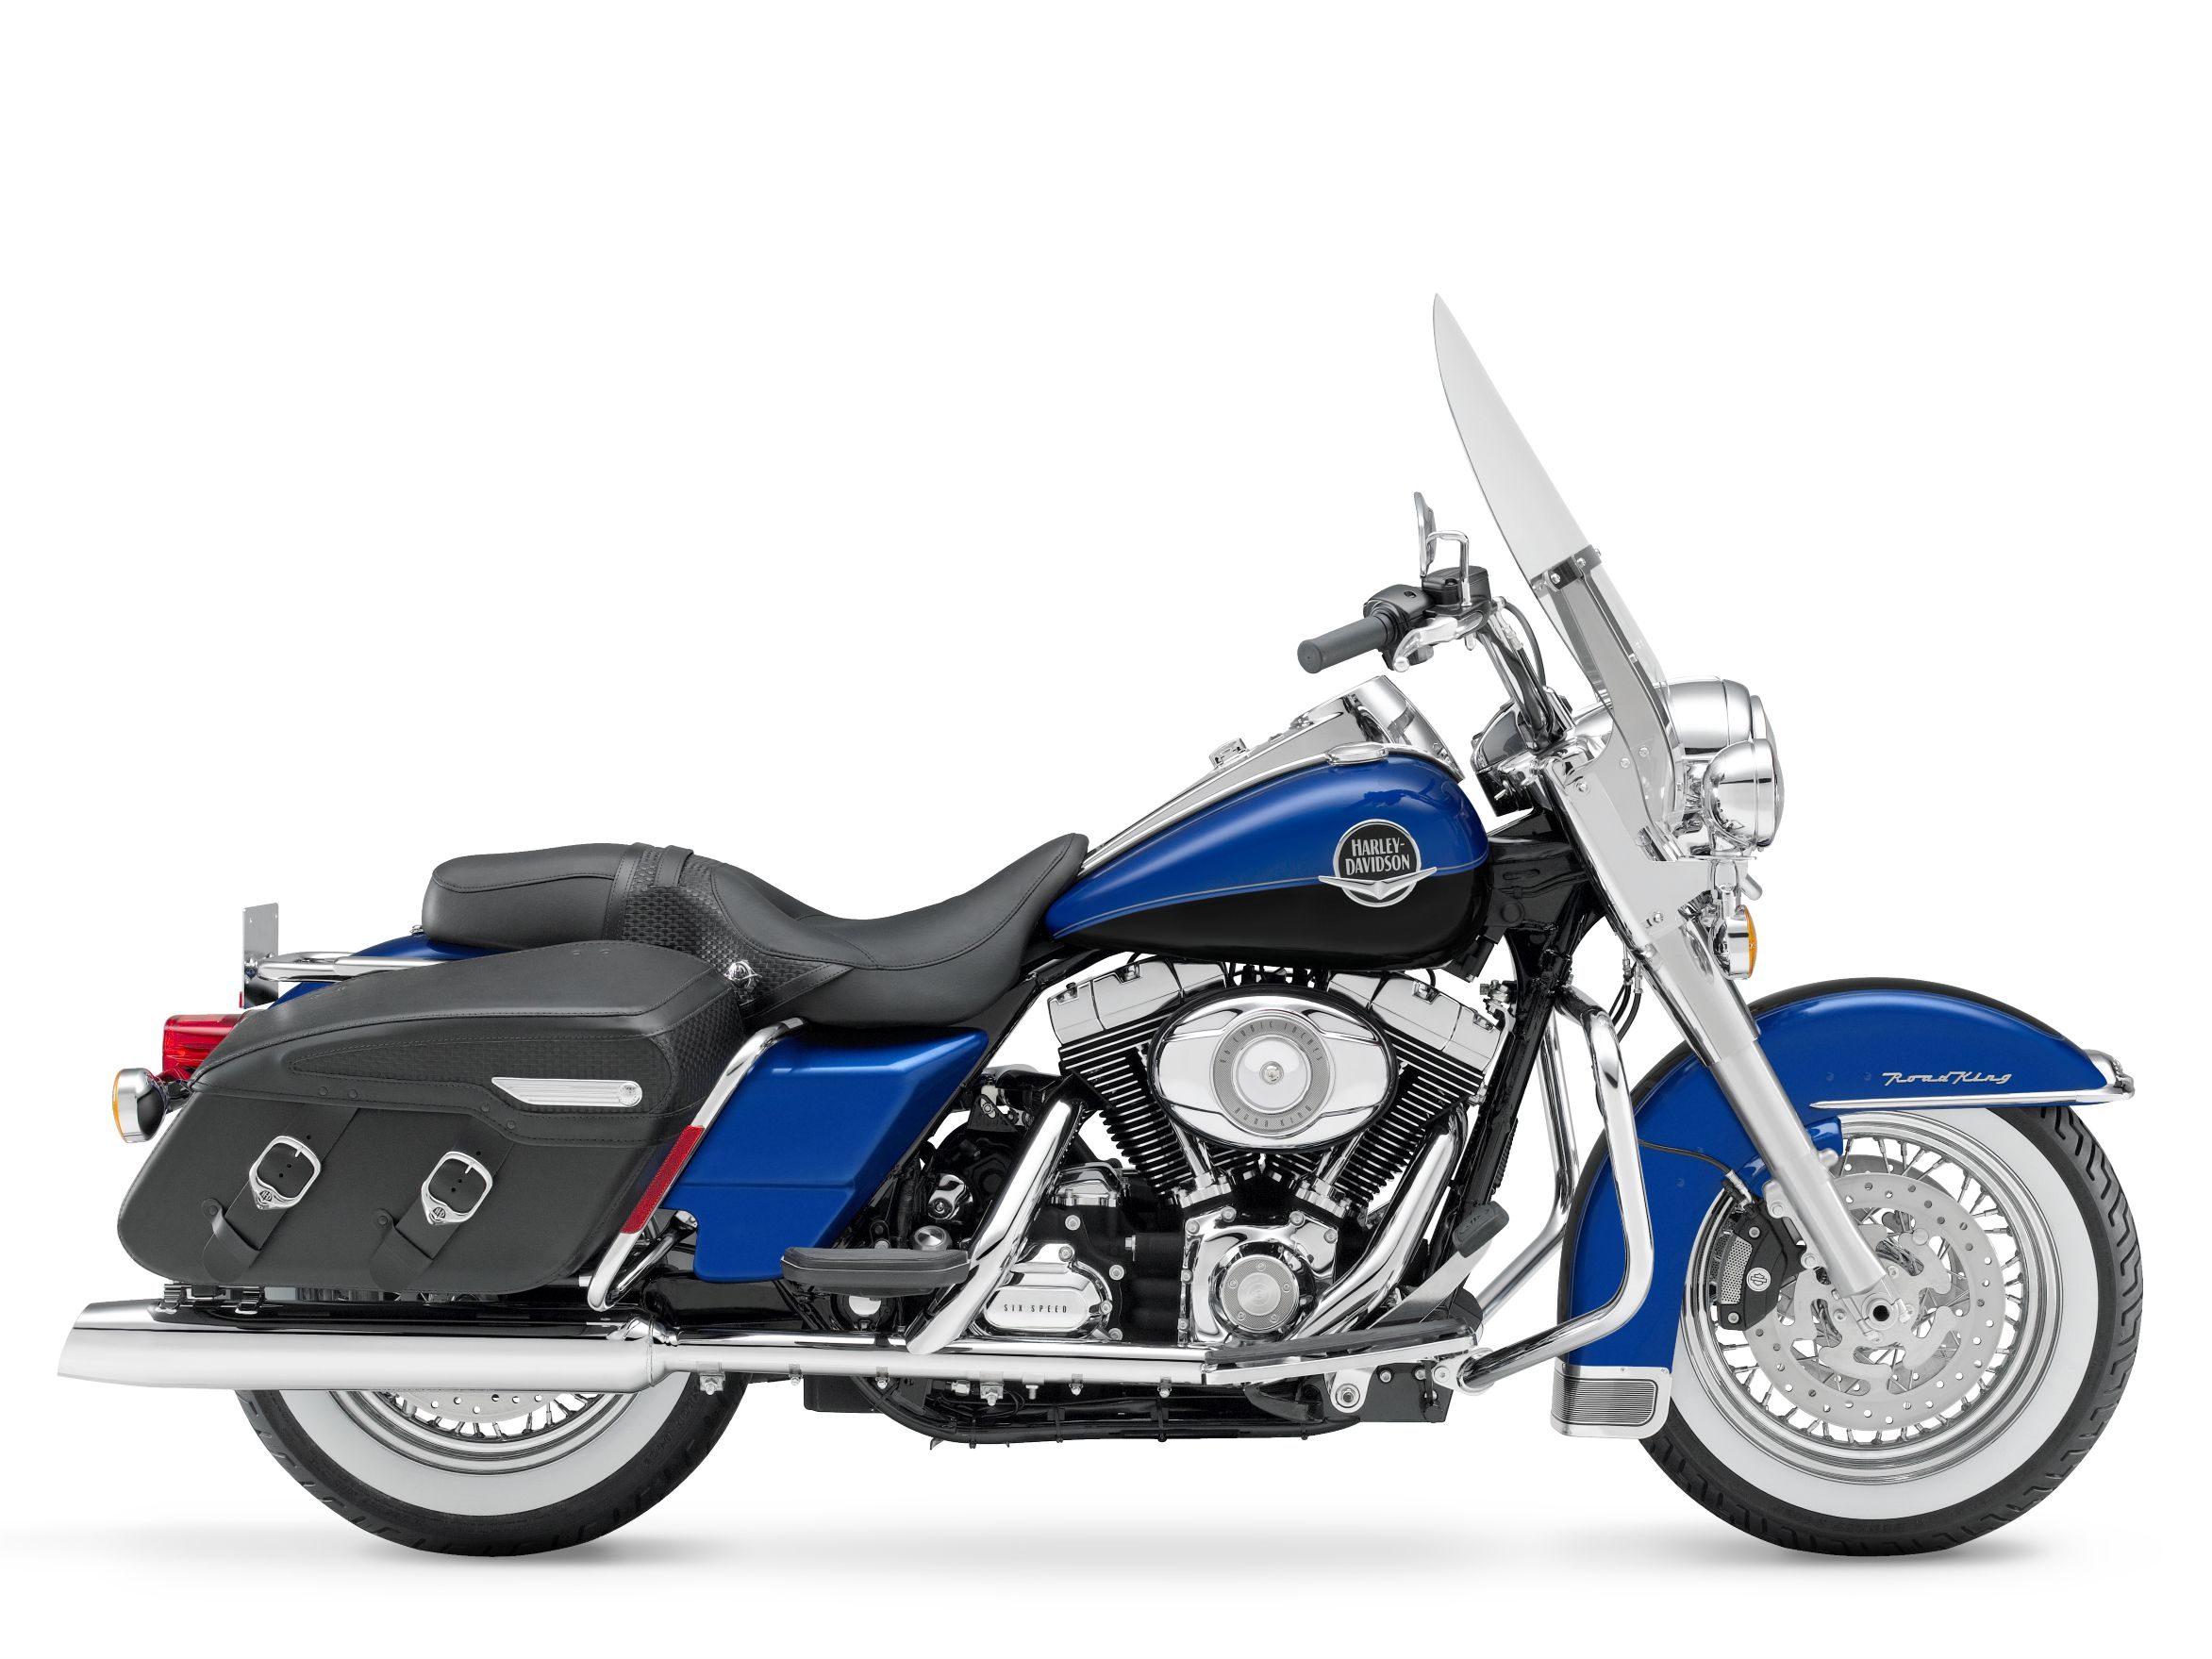 2008 Harley Davidson Lineup Gallery And Buyer S Guide